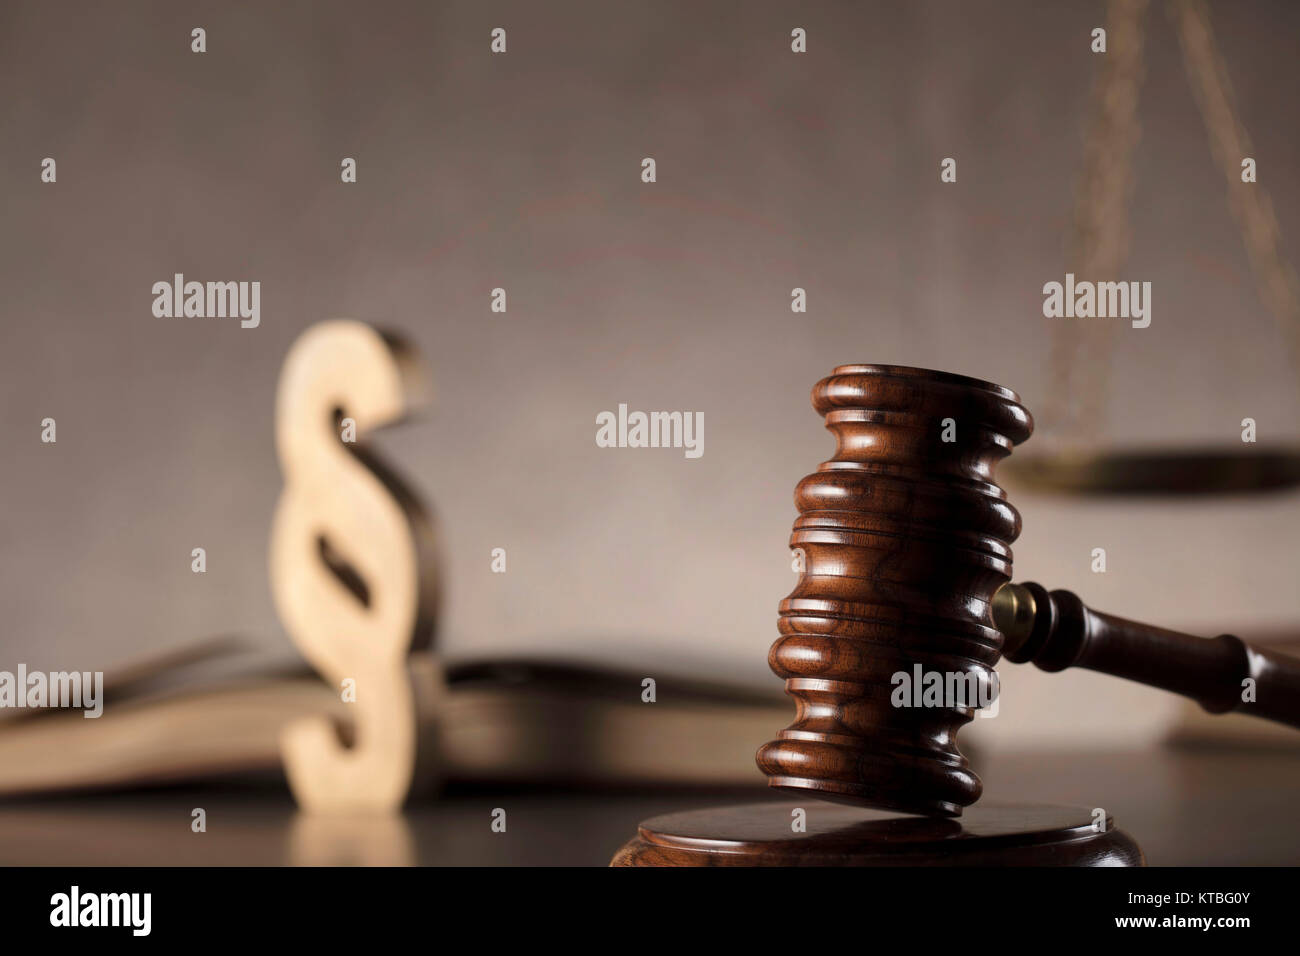 Judge antique gavelscale book and paragraph sign law symbols judge antique gavelscale book and paragraph sign law symbols on stone table and background buycottarizona Gallery